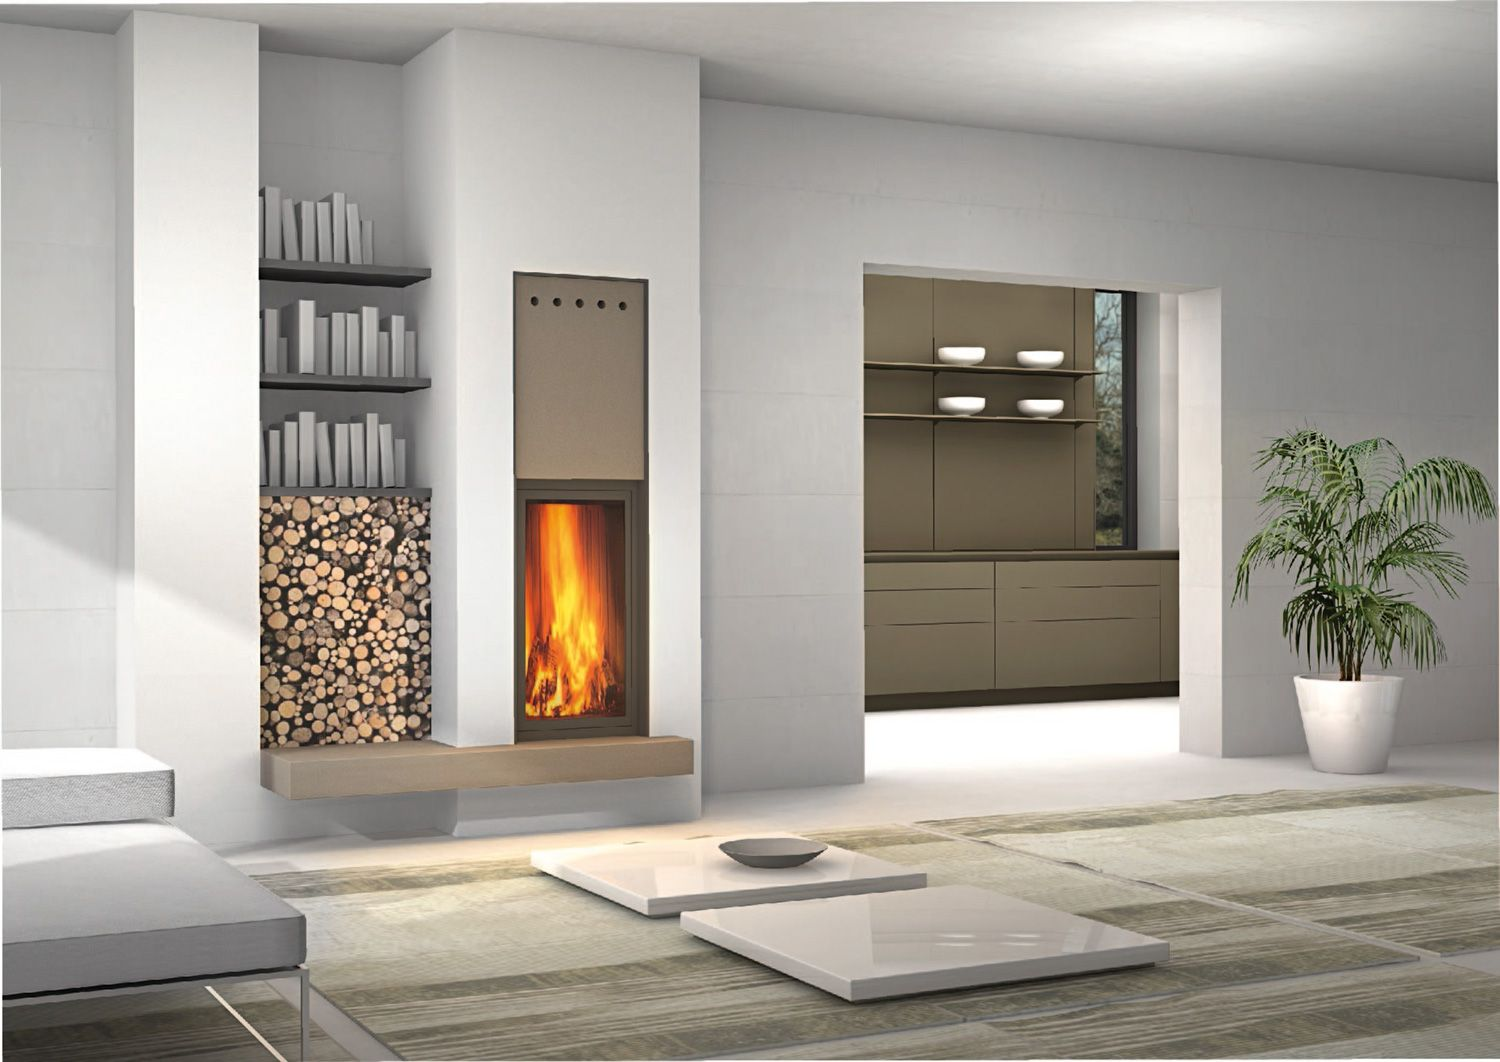 Pellet Kaminofen Piazzetta Ma266sl Beautiful Compact Built In Fireplace With A Rise And Fall